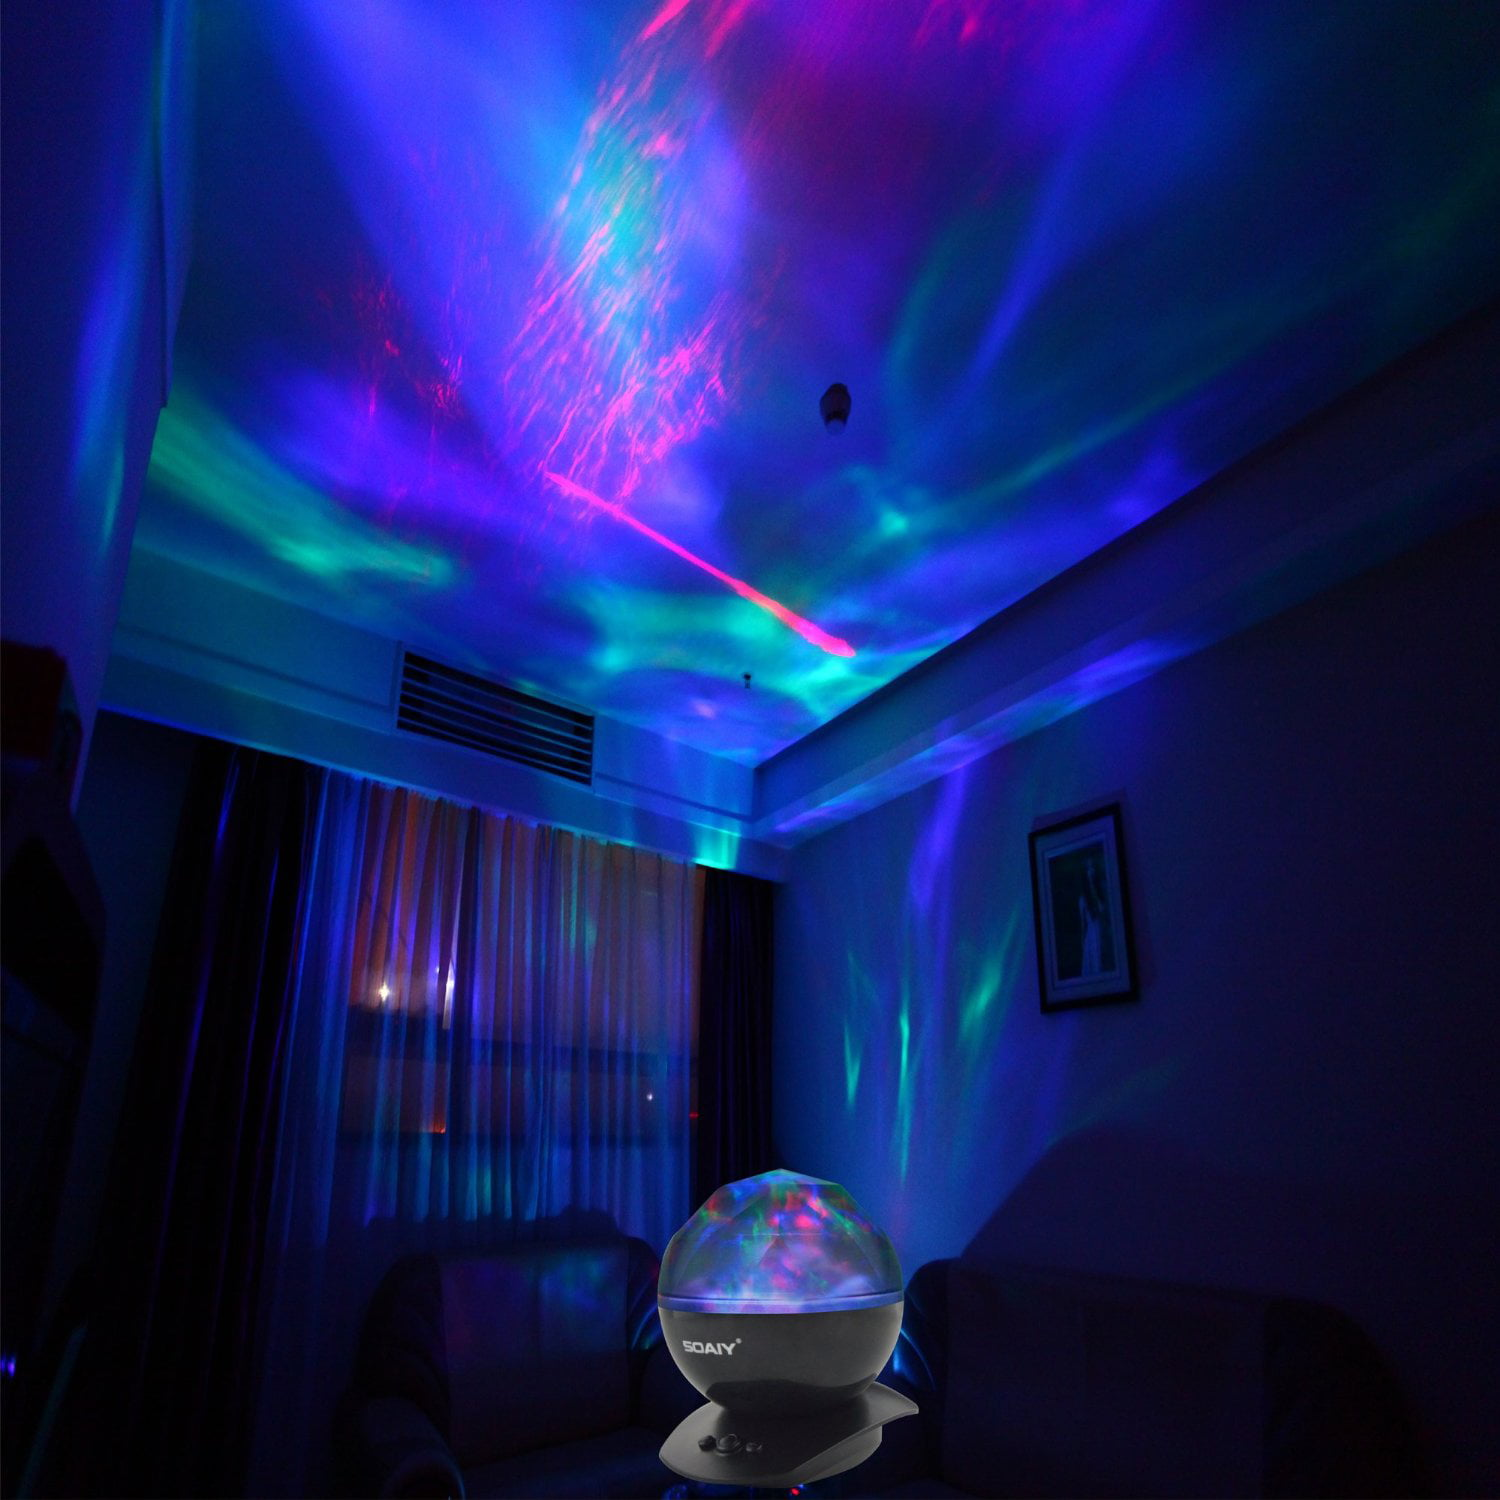 Soaiy Night Light Music Projector White Noise Machine Color Chaing Sleep Sound Soother Aurora Projectable Lamp For S Kids Toddler Baby Infant